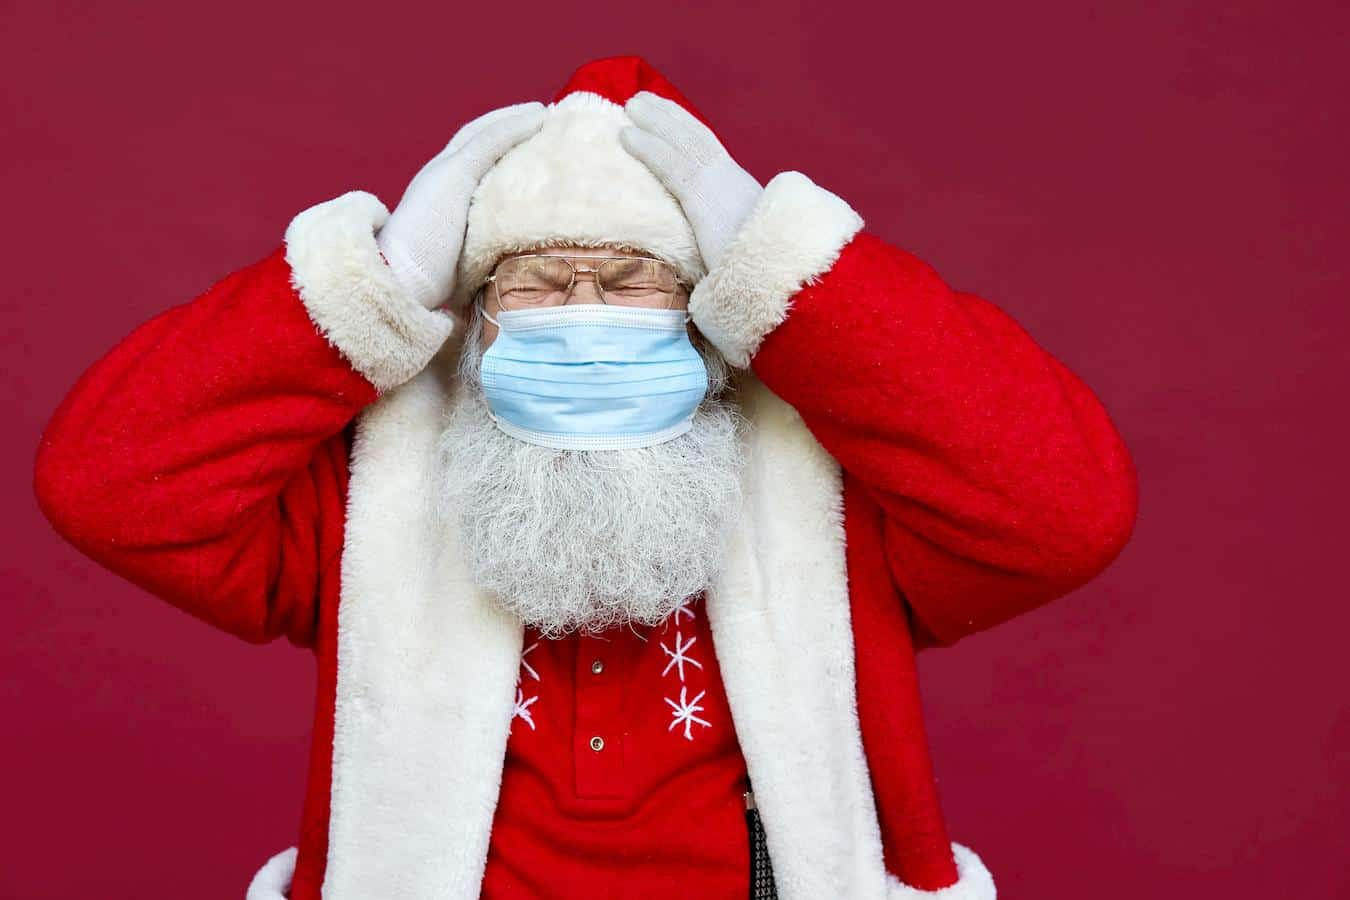 5 Ways To Wreck the Most Wonderful Time of the year